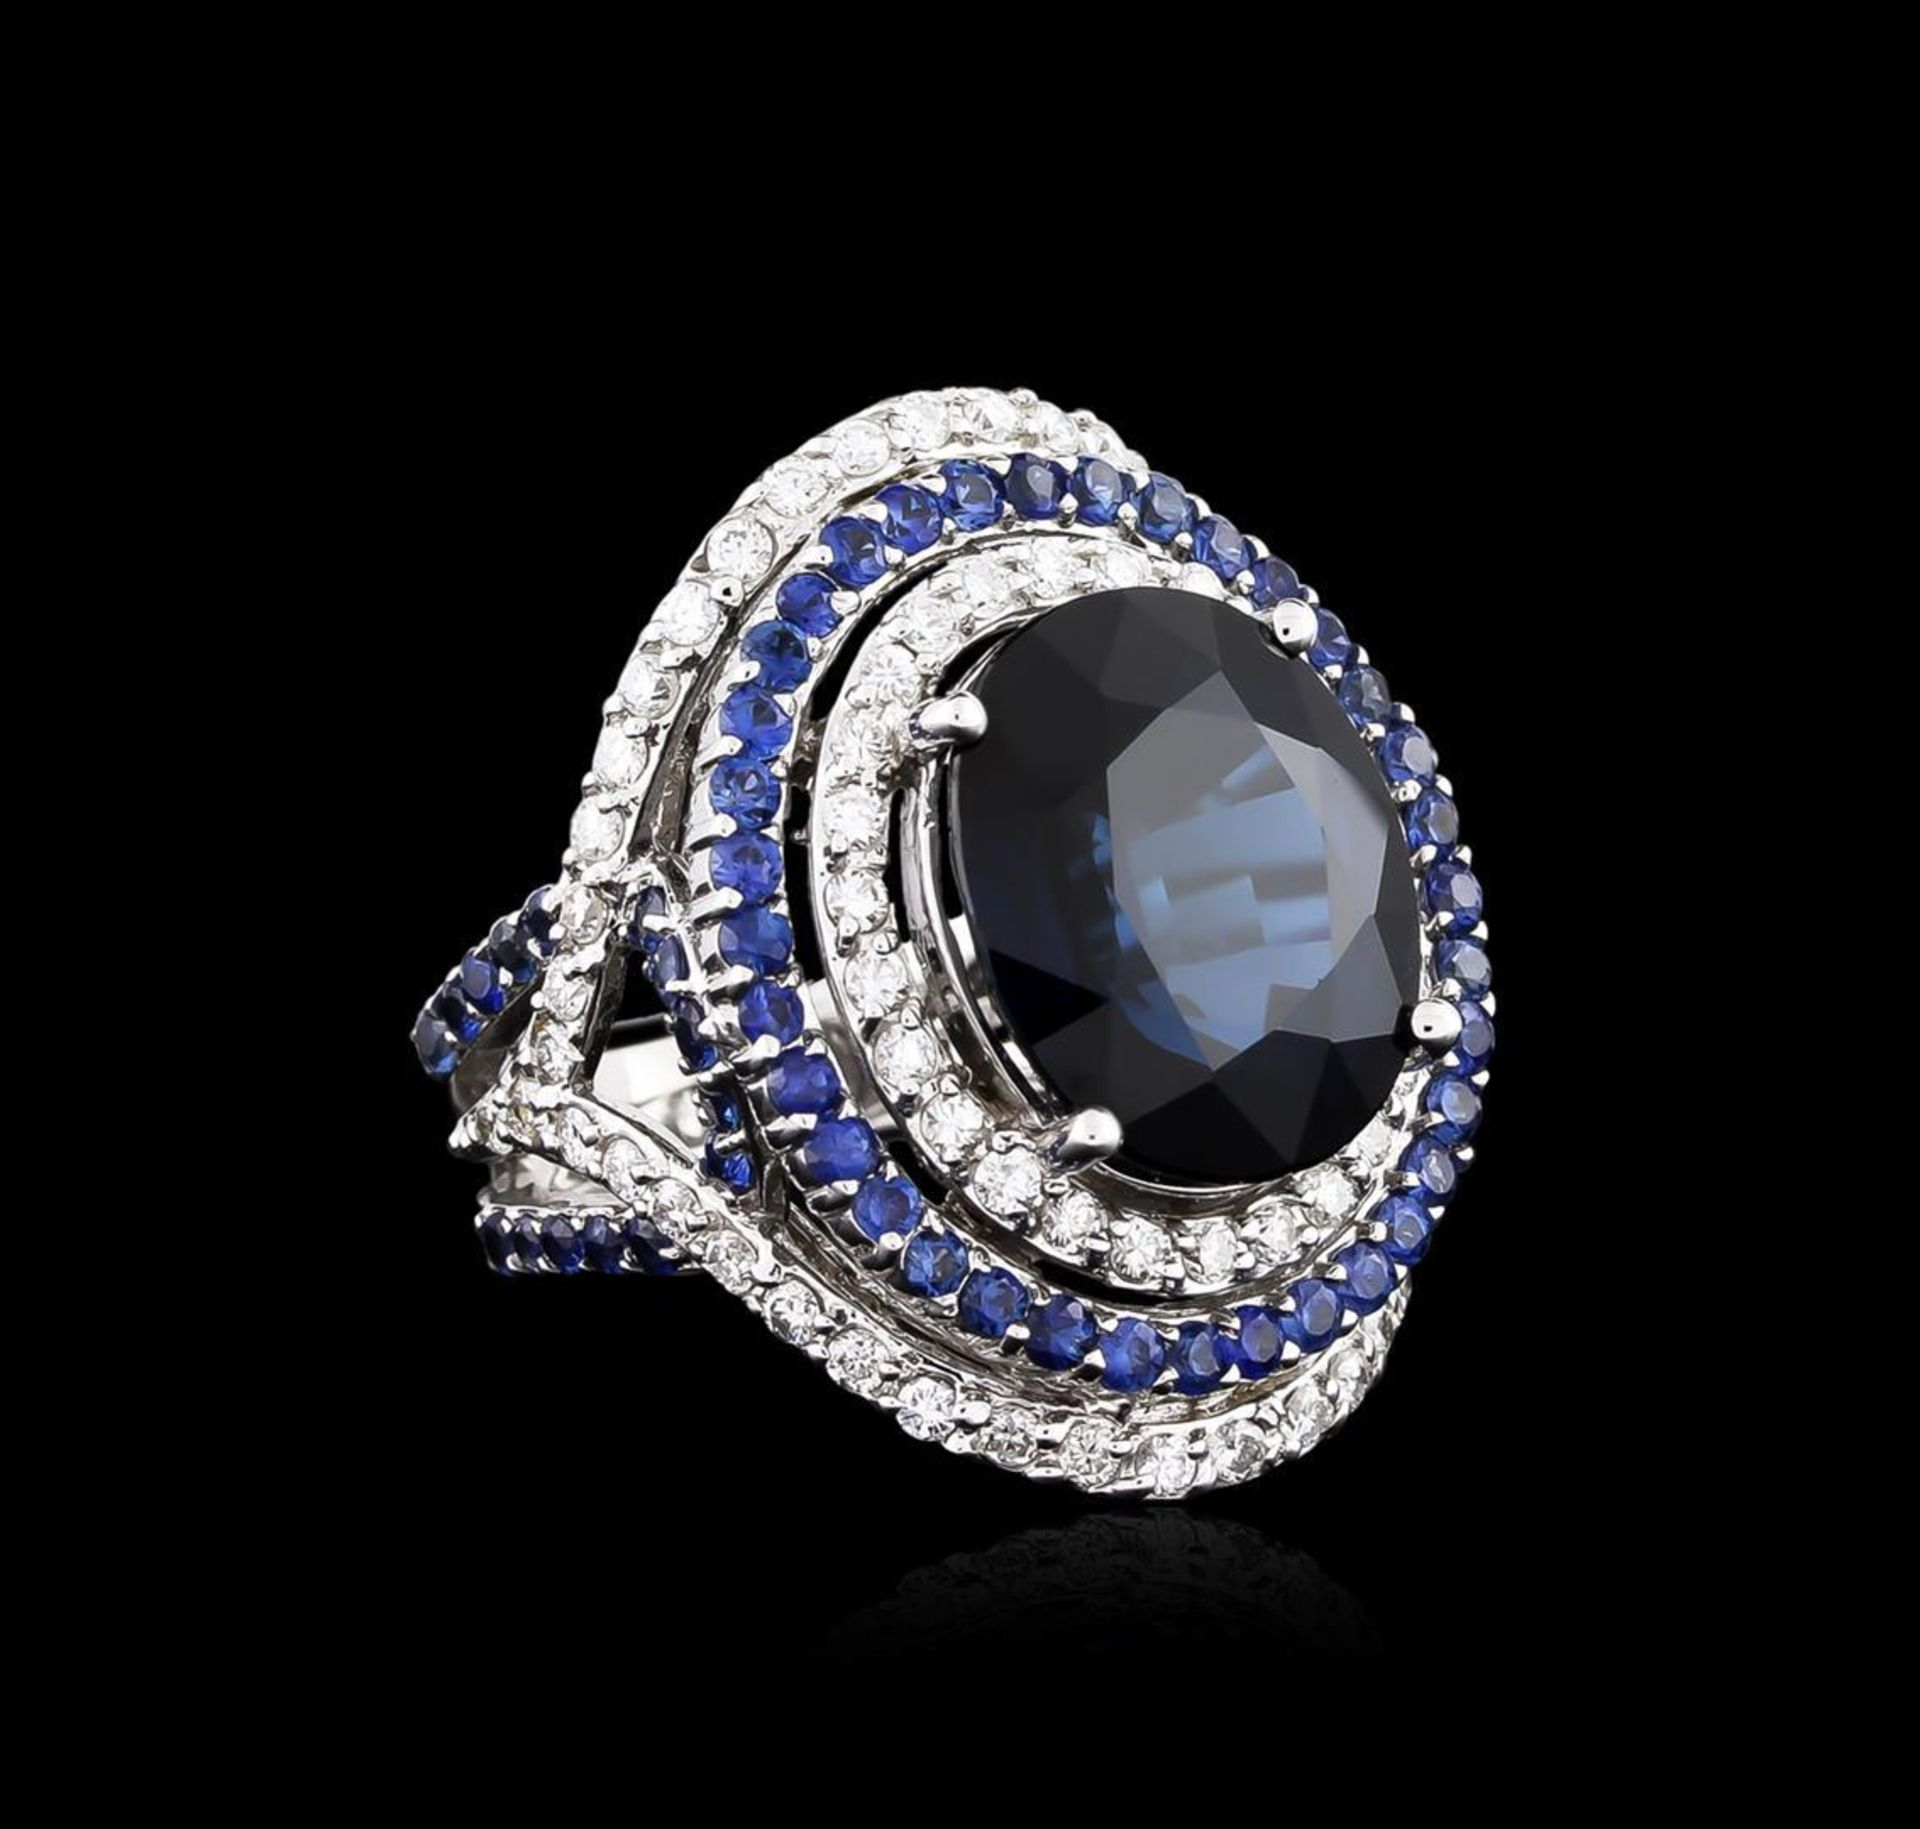 14.21 ctw Sapphire and Diamond Ring - 18KT White Gold GIA Certified - Image 2 of 5